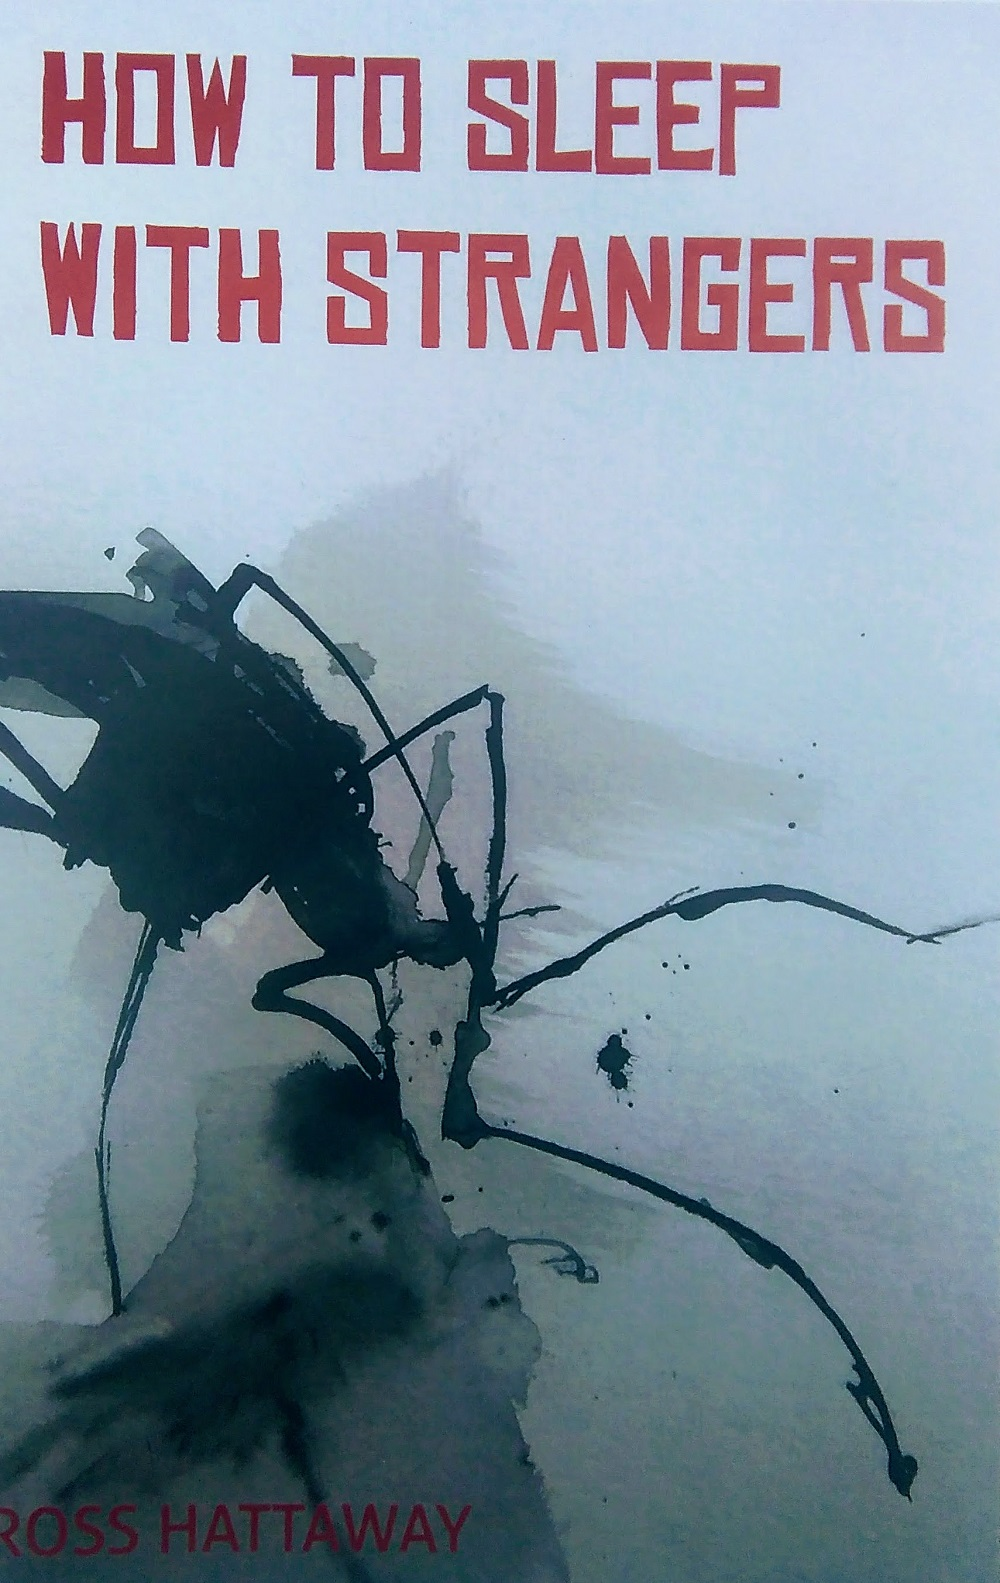 Innovative Irish poetry, third collection from Ross Hattaway How to Sleep with Strangers published by Turas Press